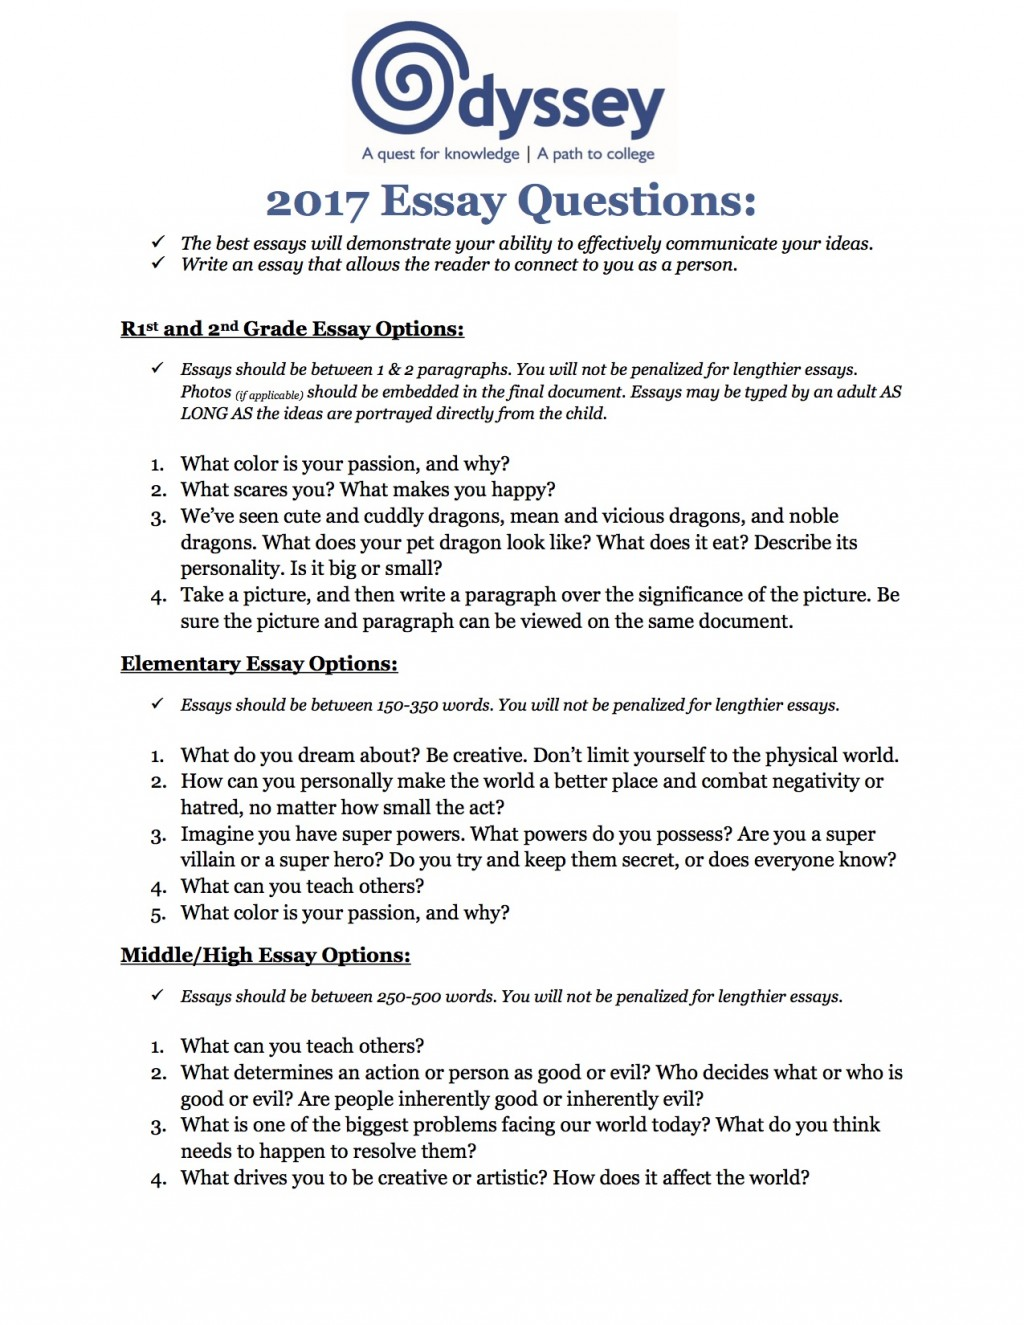 023 5829f1d2c75f9a7c5588b1c6 Proposed20essay20topics202017 Essay Example College Top Topics Failure Prompt Examples That Stand Out 2018 Large